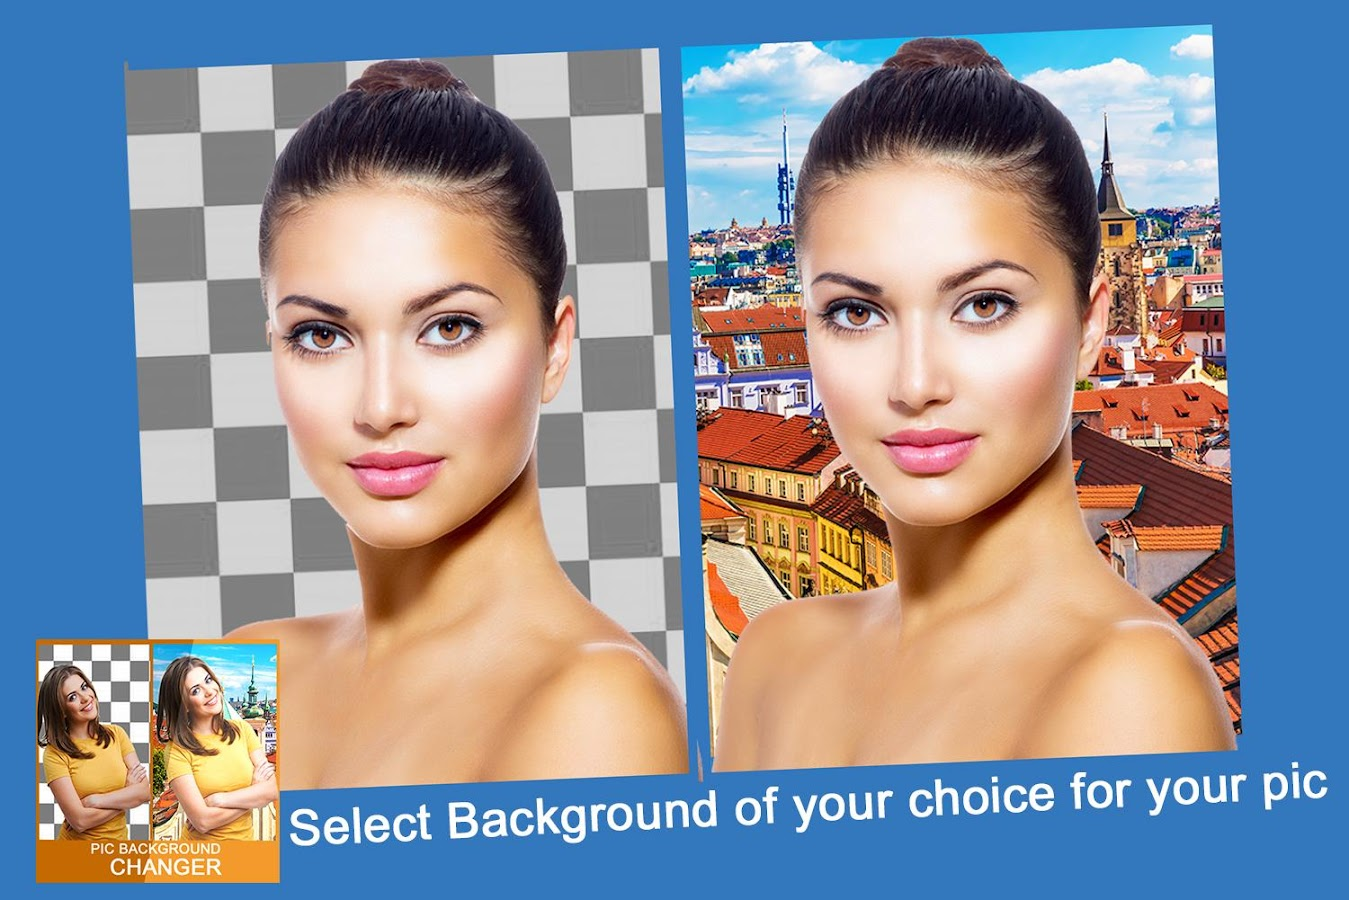 Background image remover - Photo Background Remover Screenshot